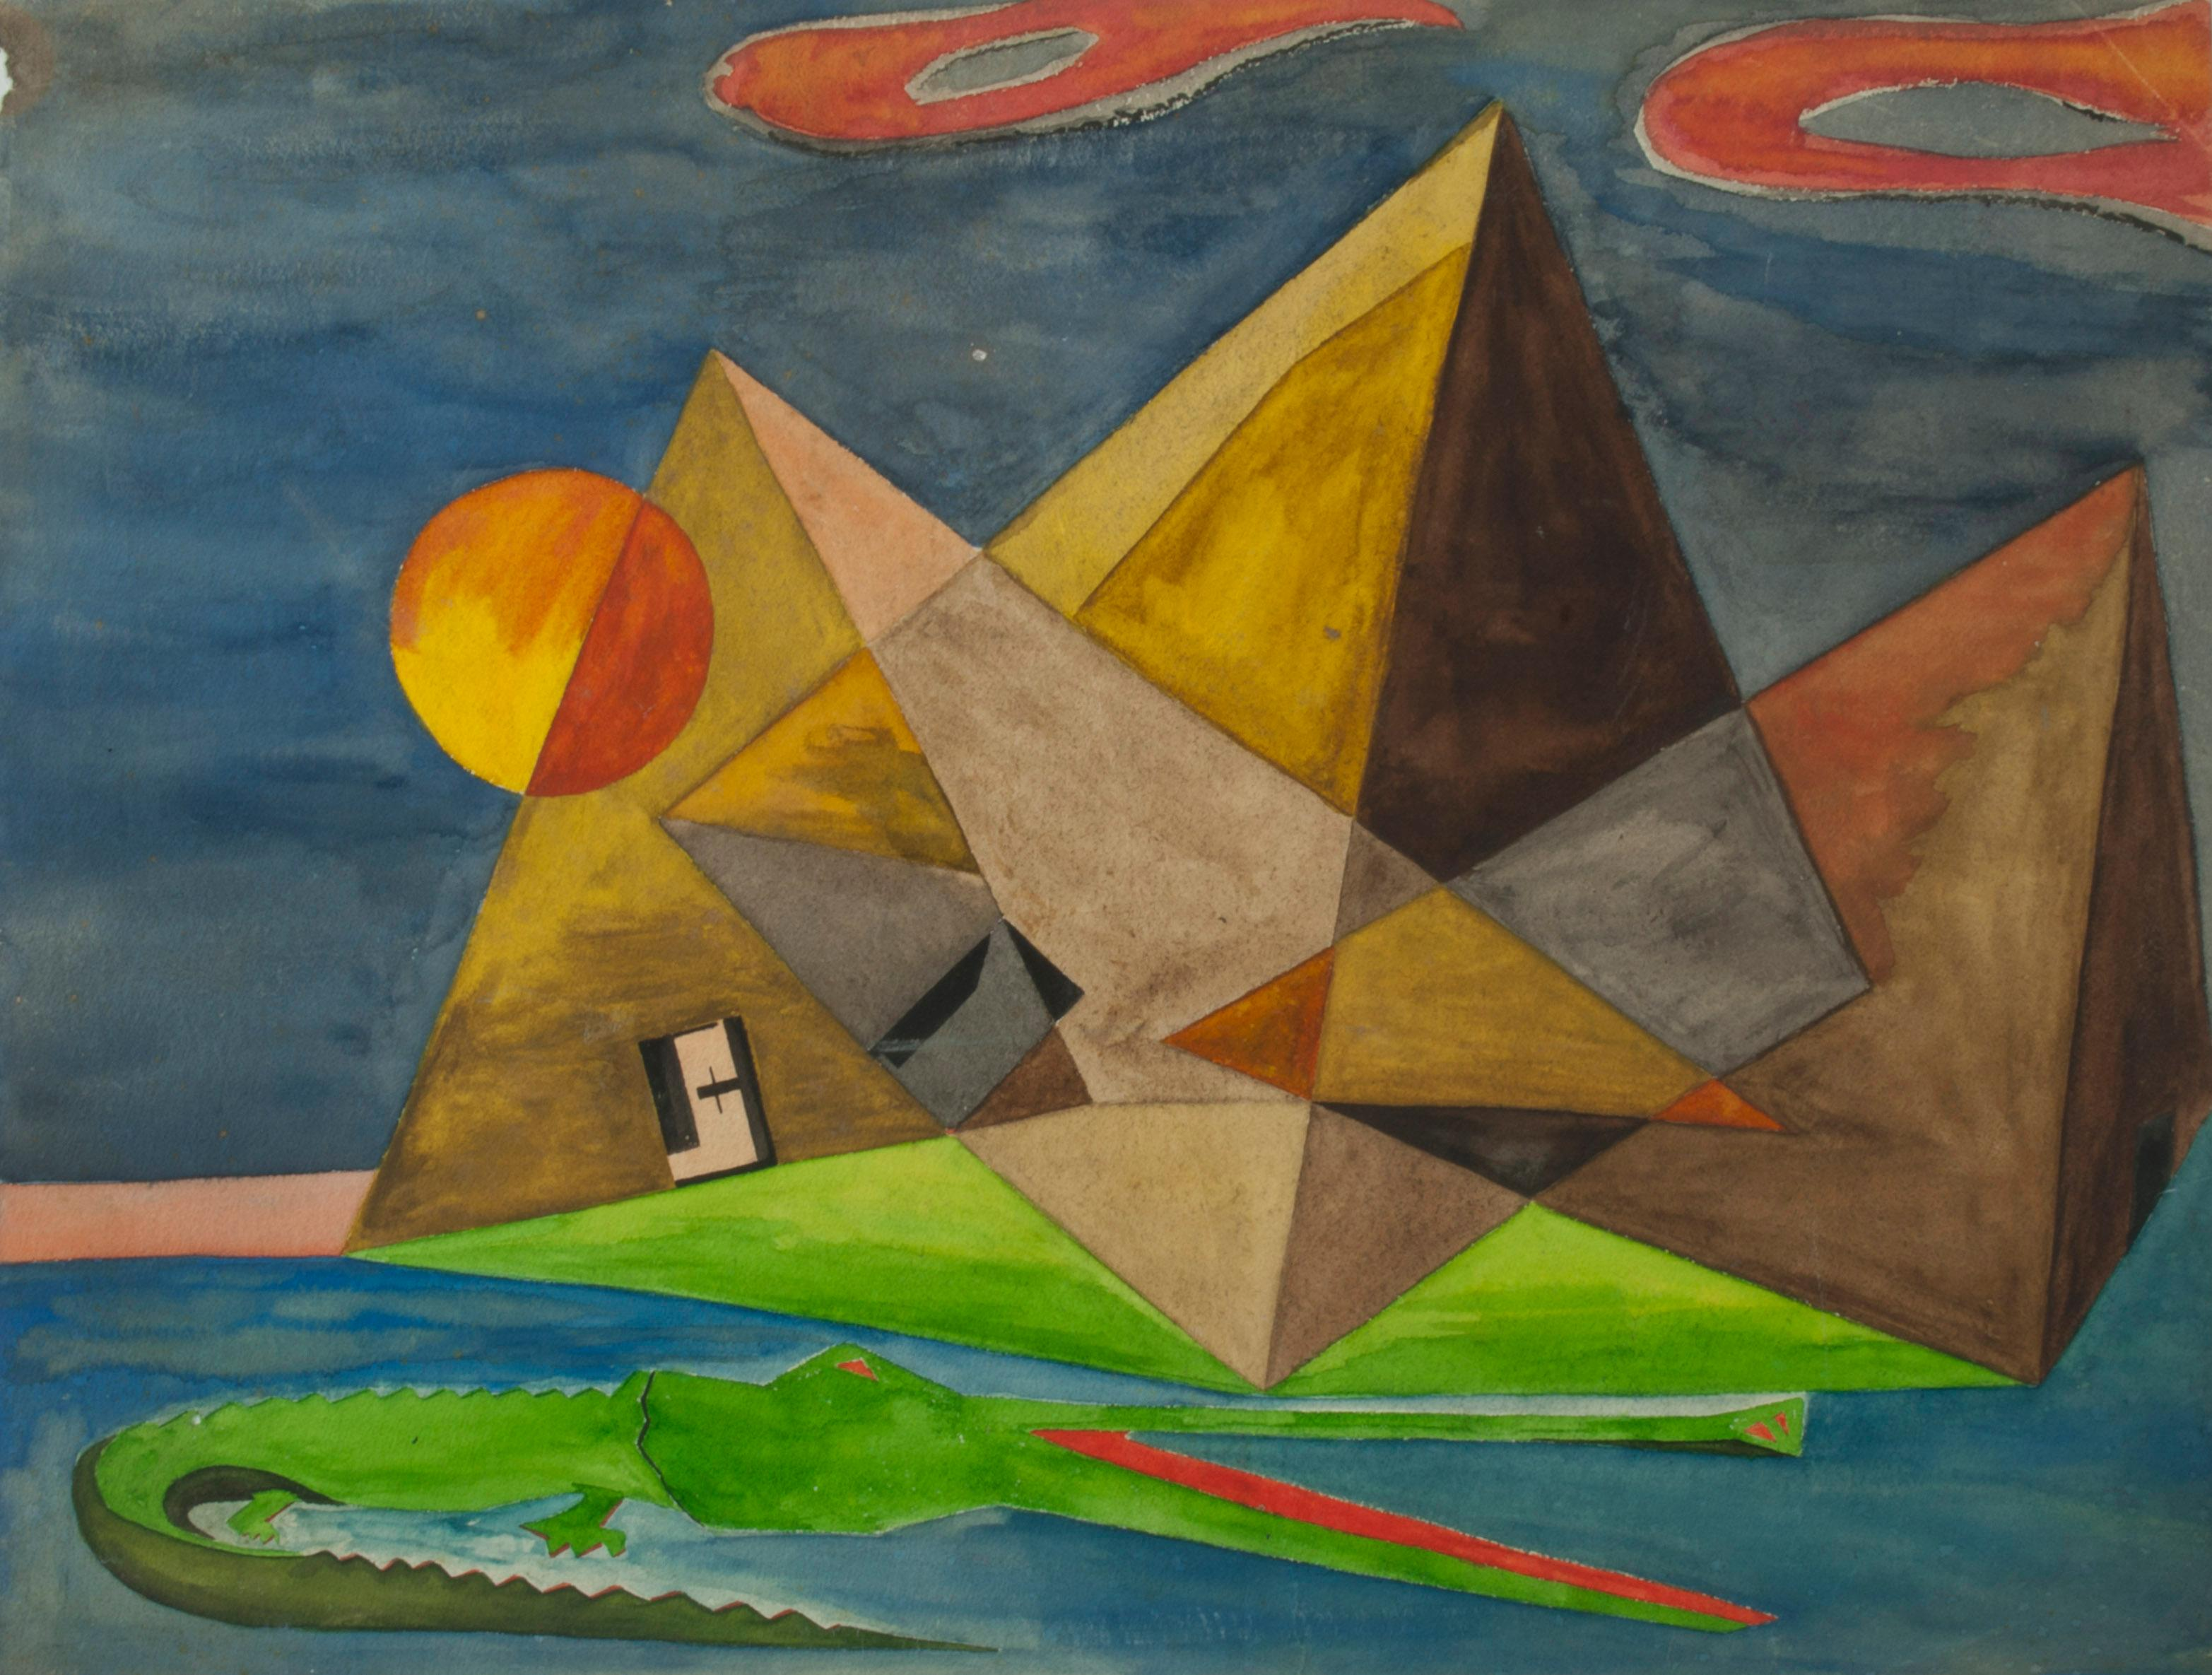 Untitled (Surrealist rendering of Pyramids at Giza with alligator)